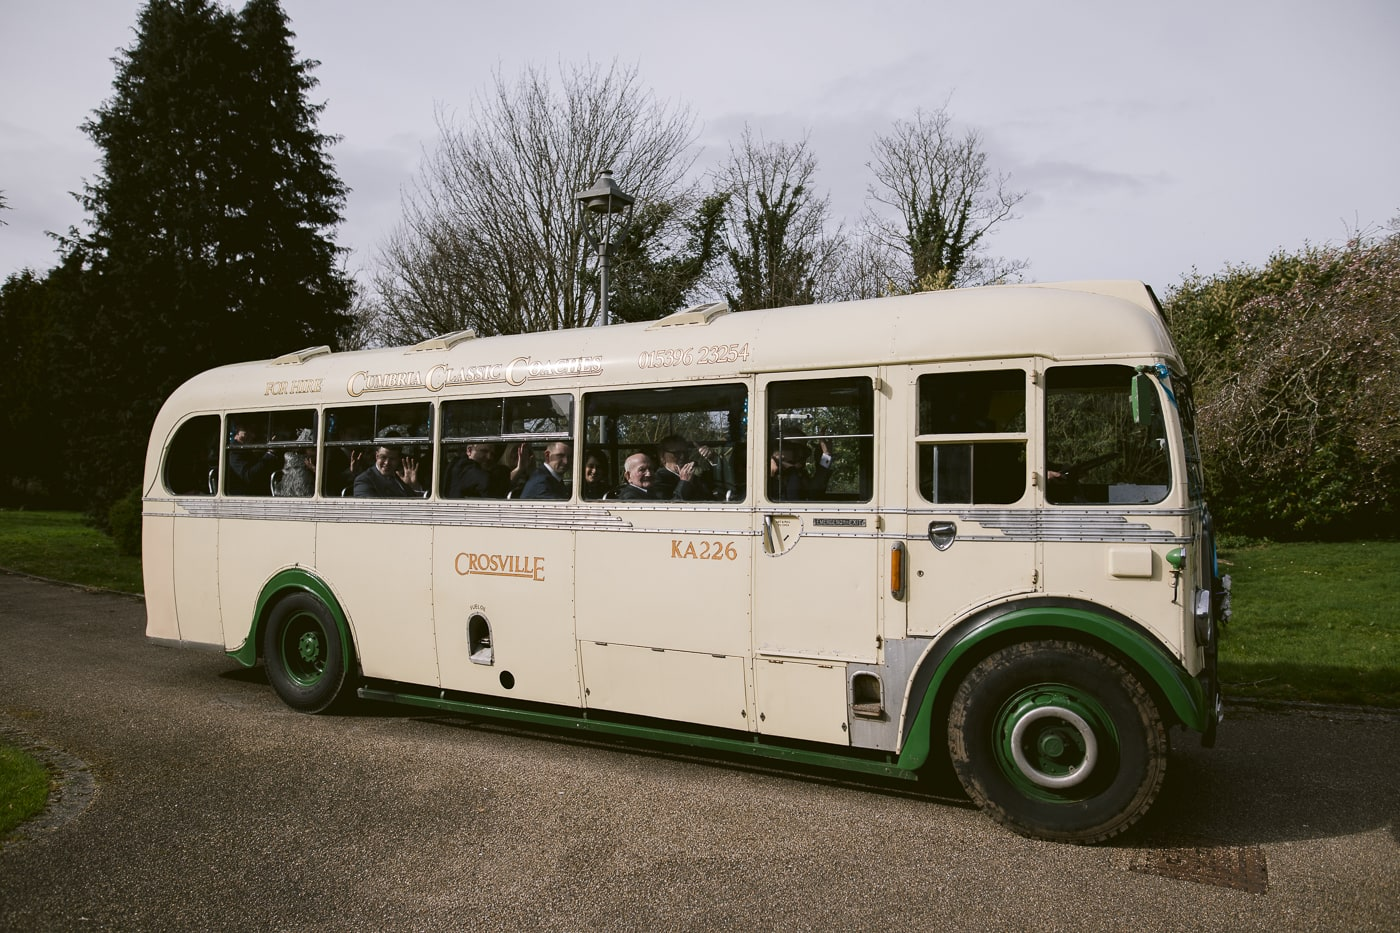 Cumbria classic Coach at Carlisle Registry Office